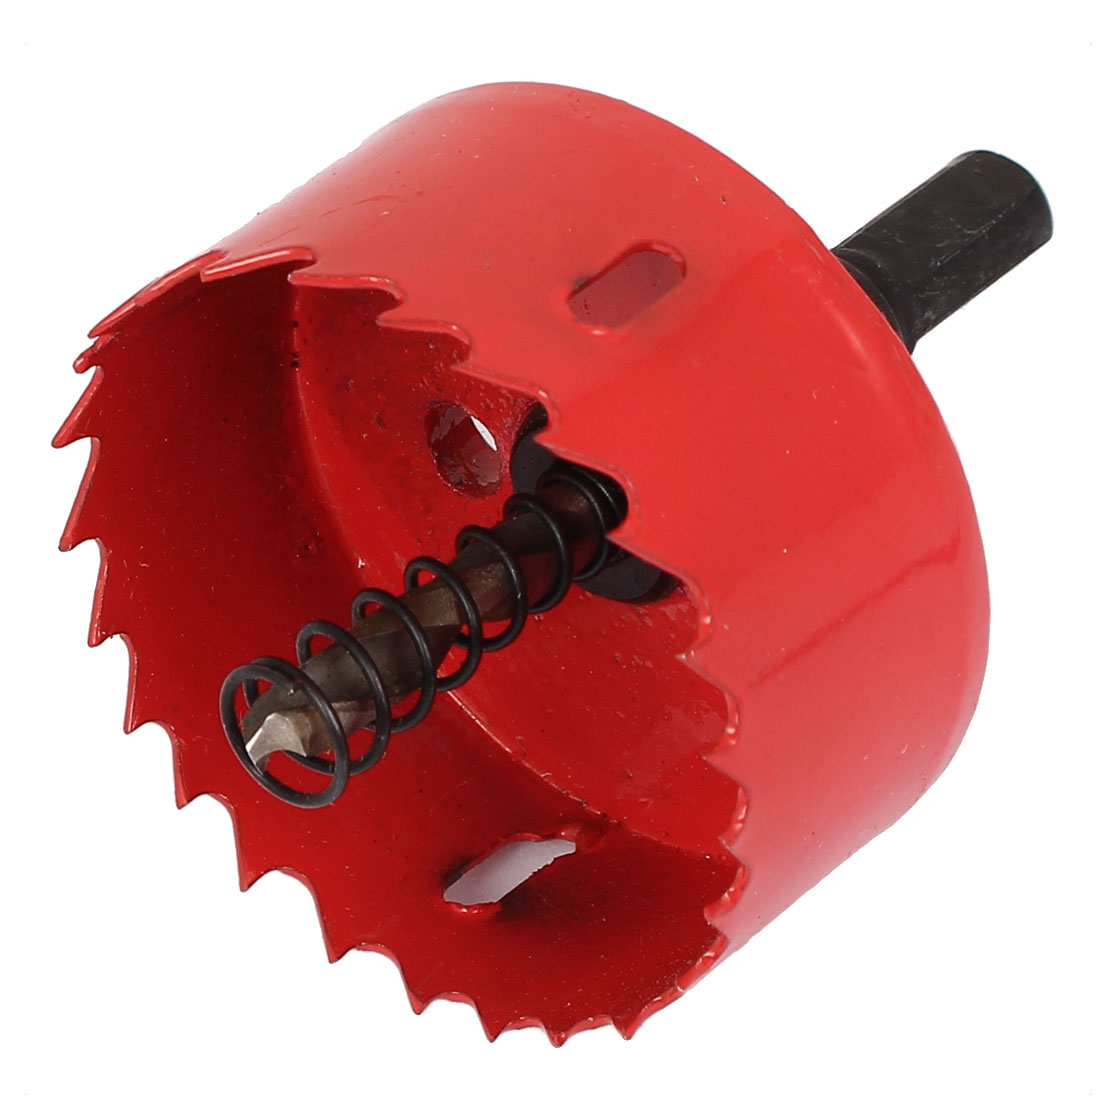 10mm Shank 60mm Cutting Dia Toothed Bi-Metal Hole Saw Cutter Drill Bit Tool Red